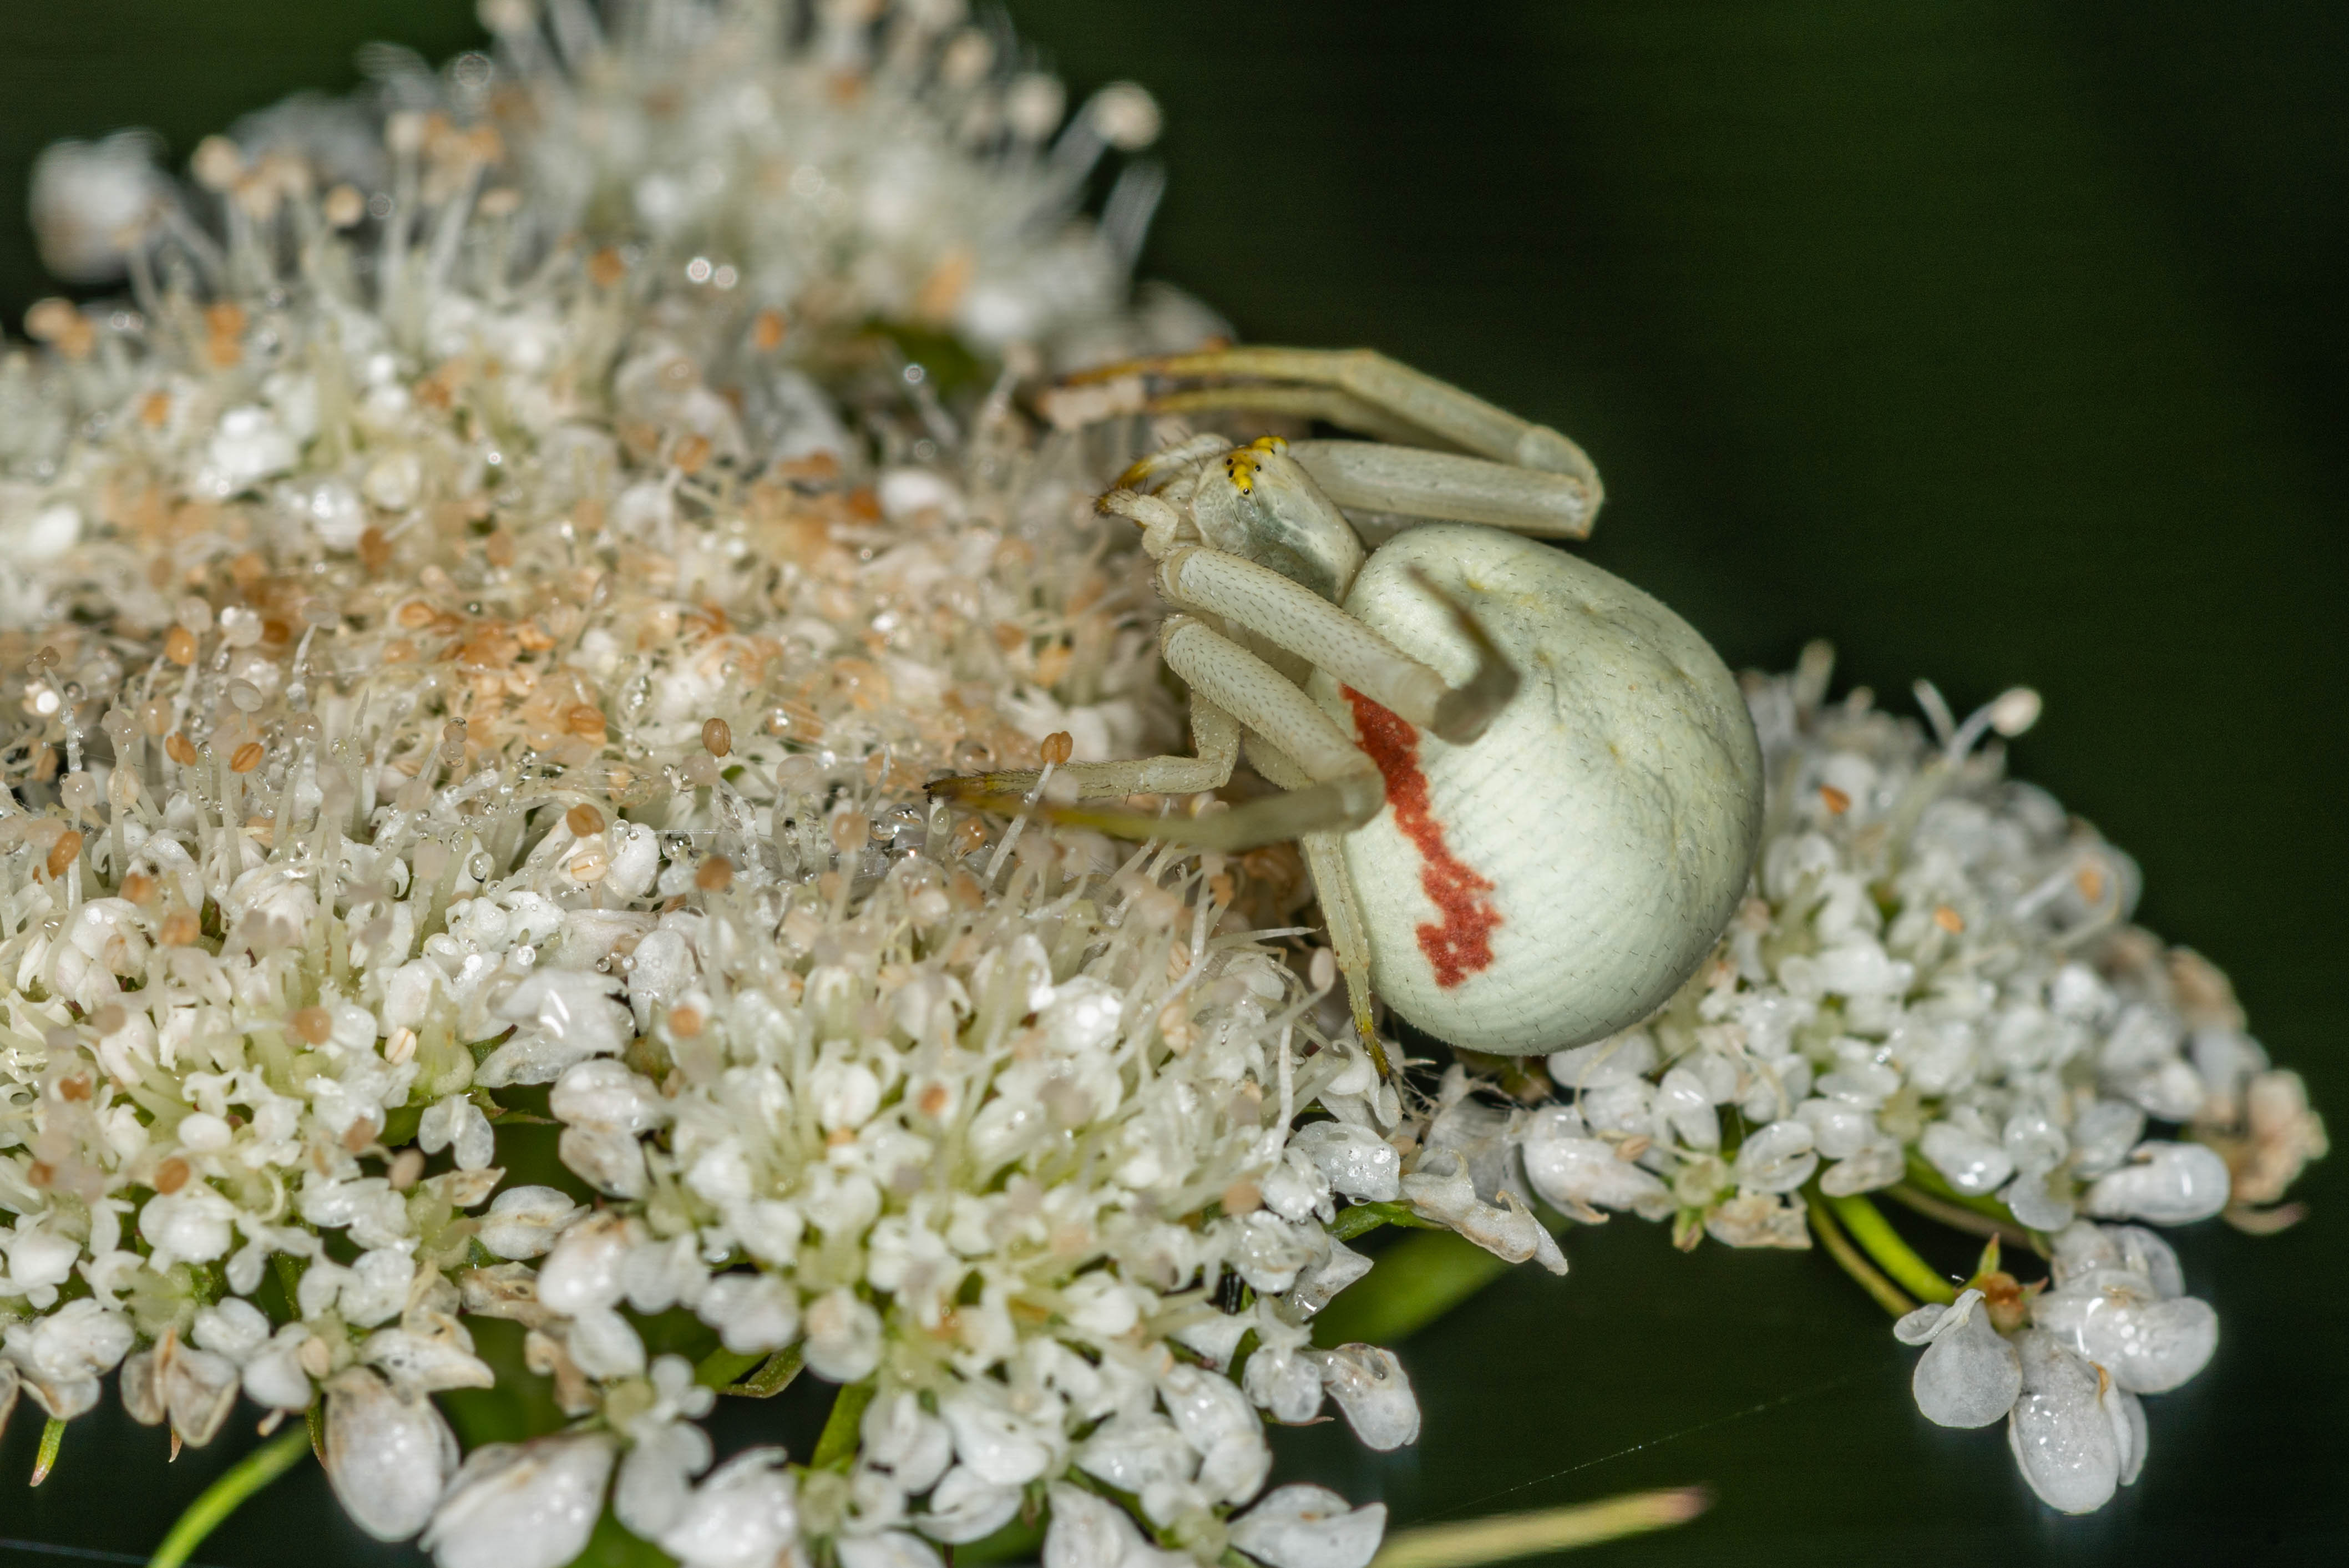 Goldenrod Crab spider 7